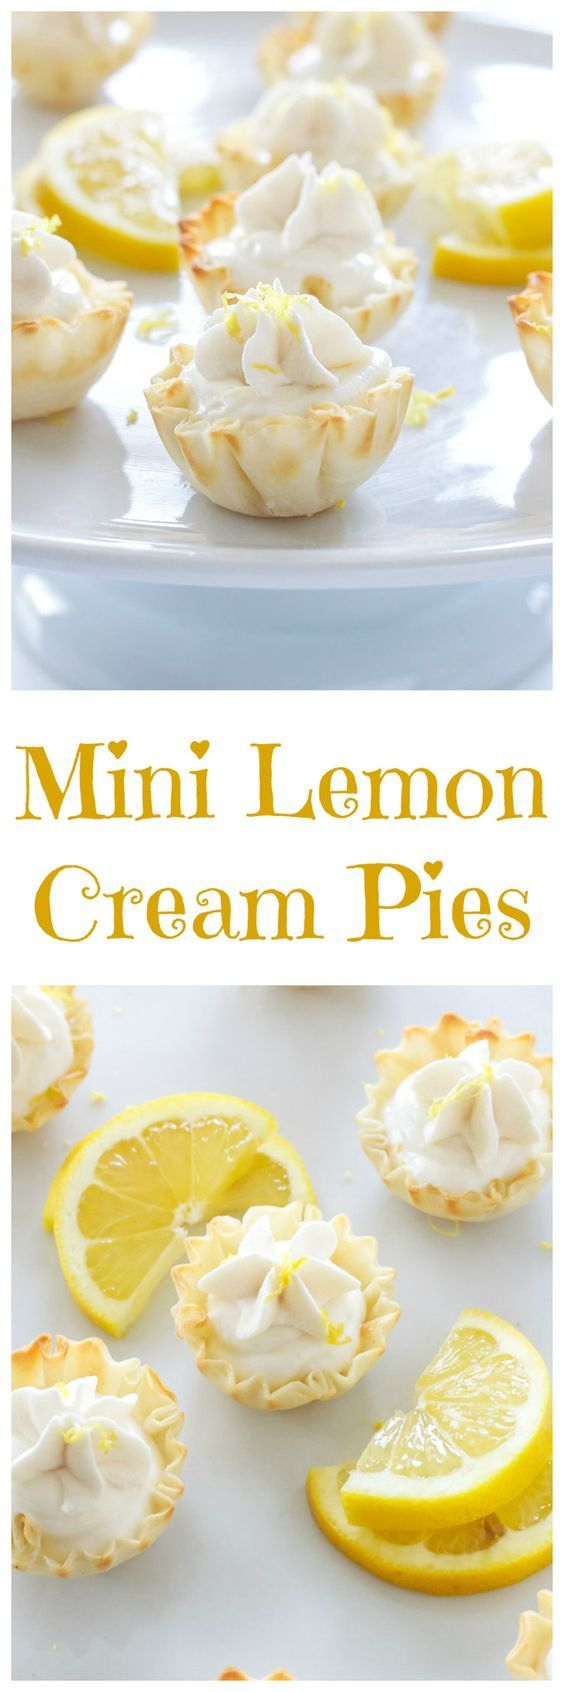 Mini Lemon Cream Pies | These one bite mini cream pies are a perfect sized dessert! | @reciperunner